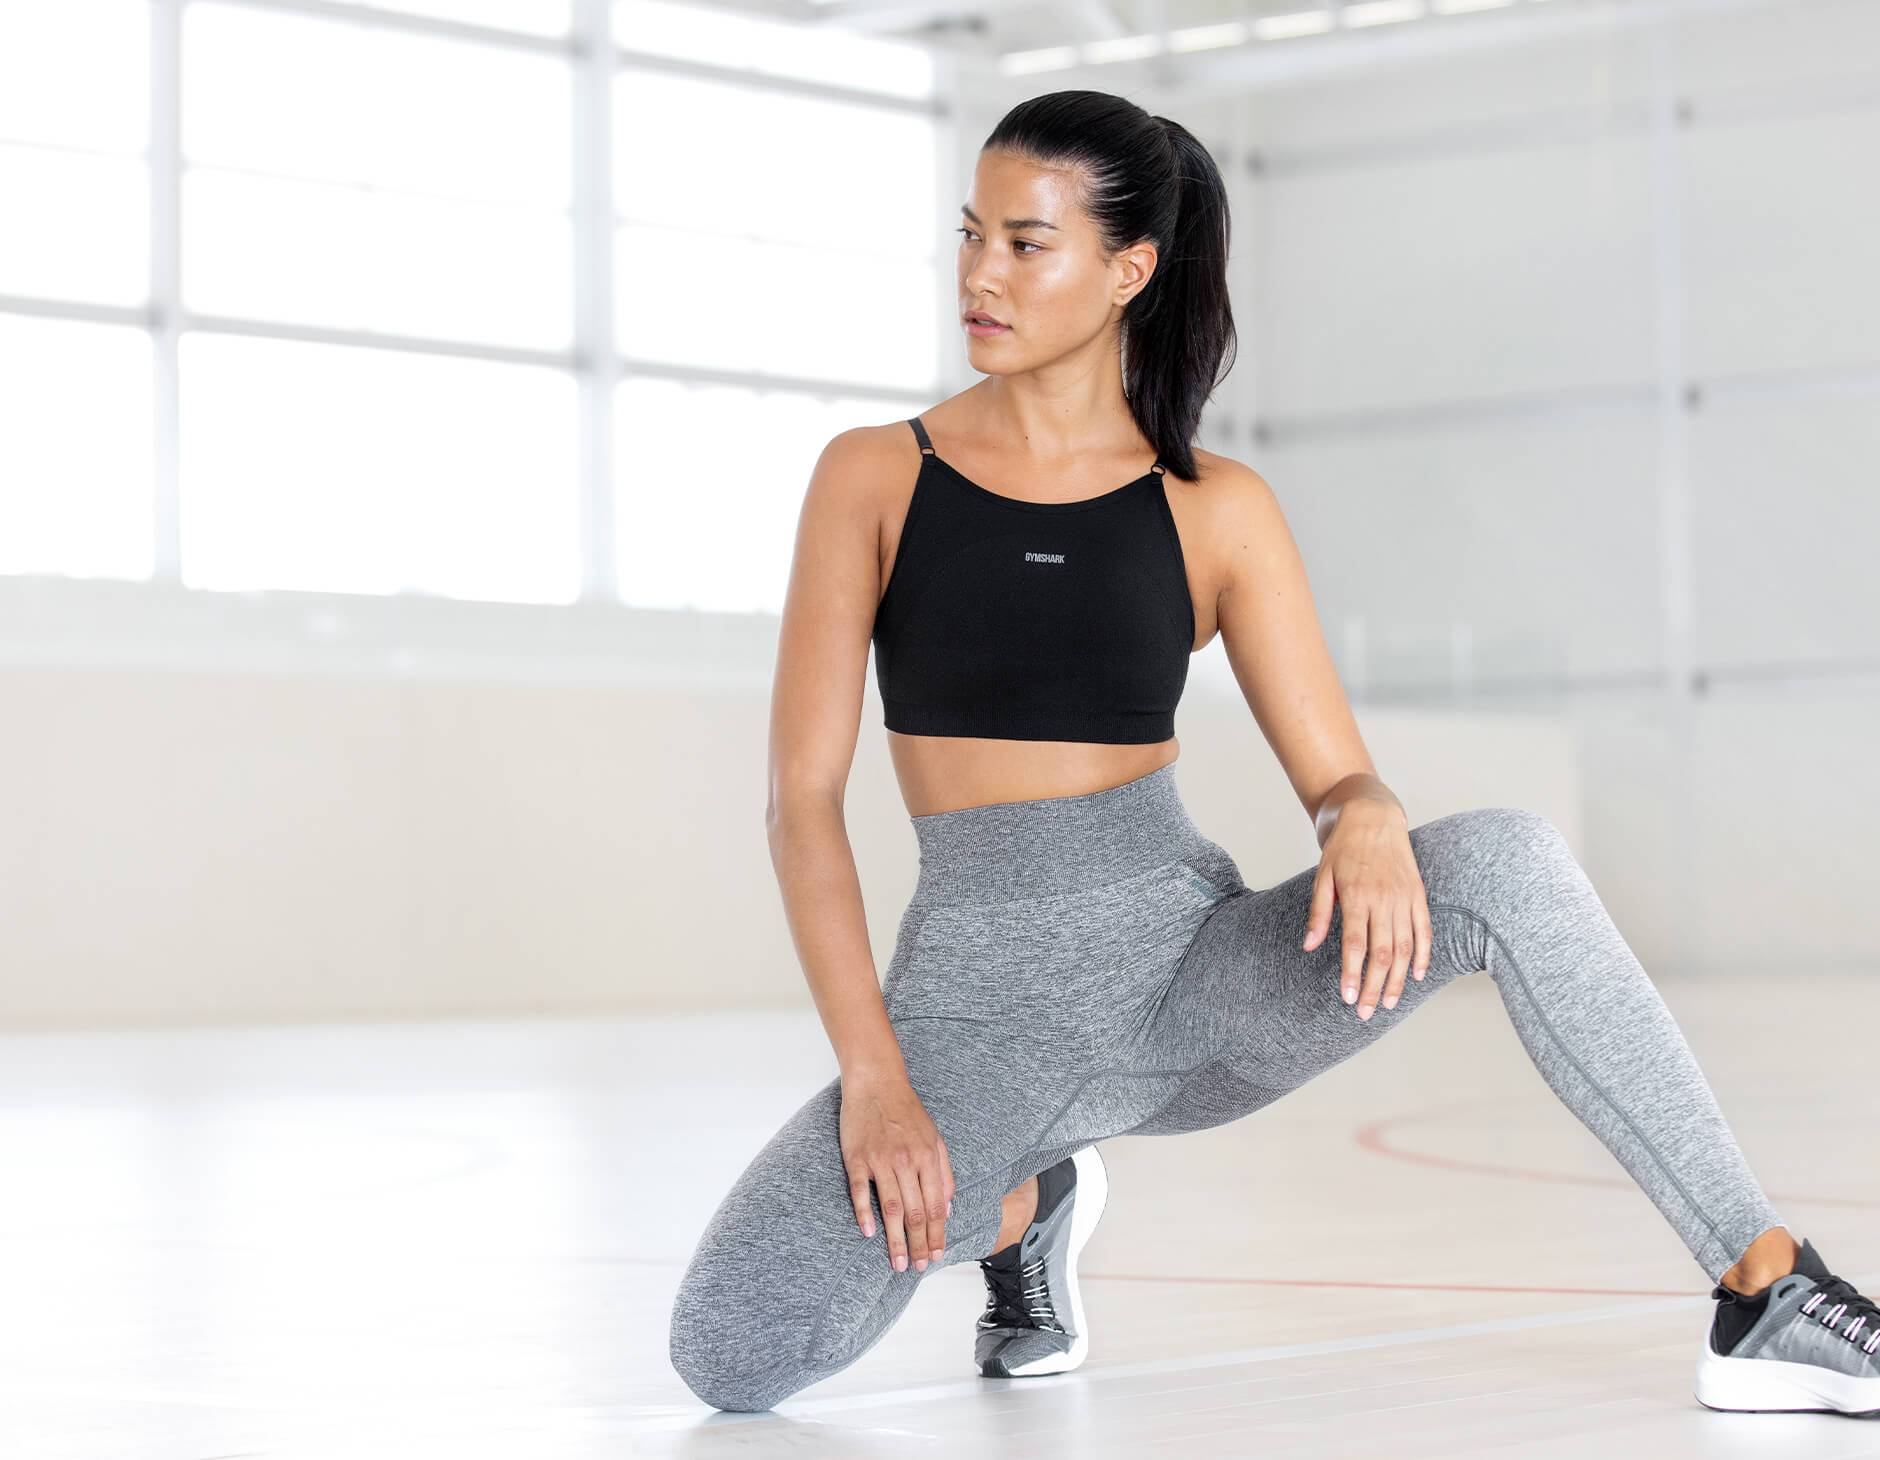 A female model crouched down in a brightly lit scene wearing the Gymshark Flex collection.